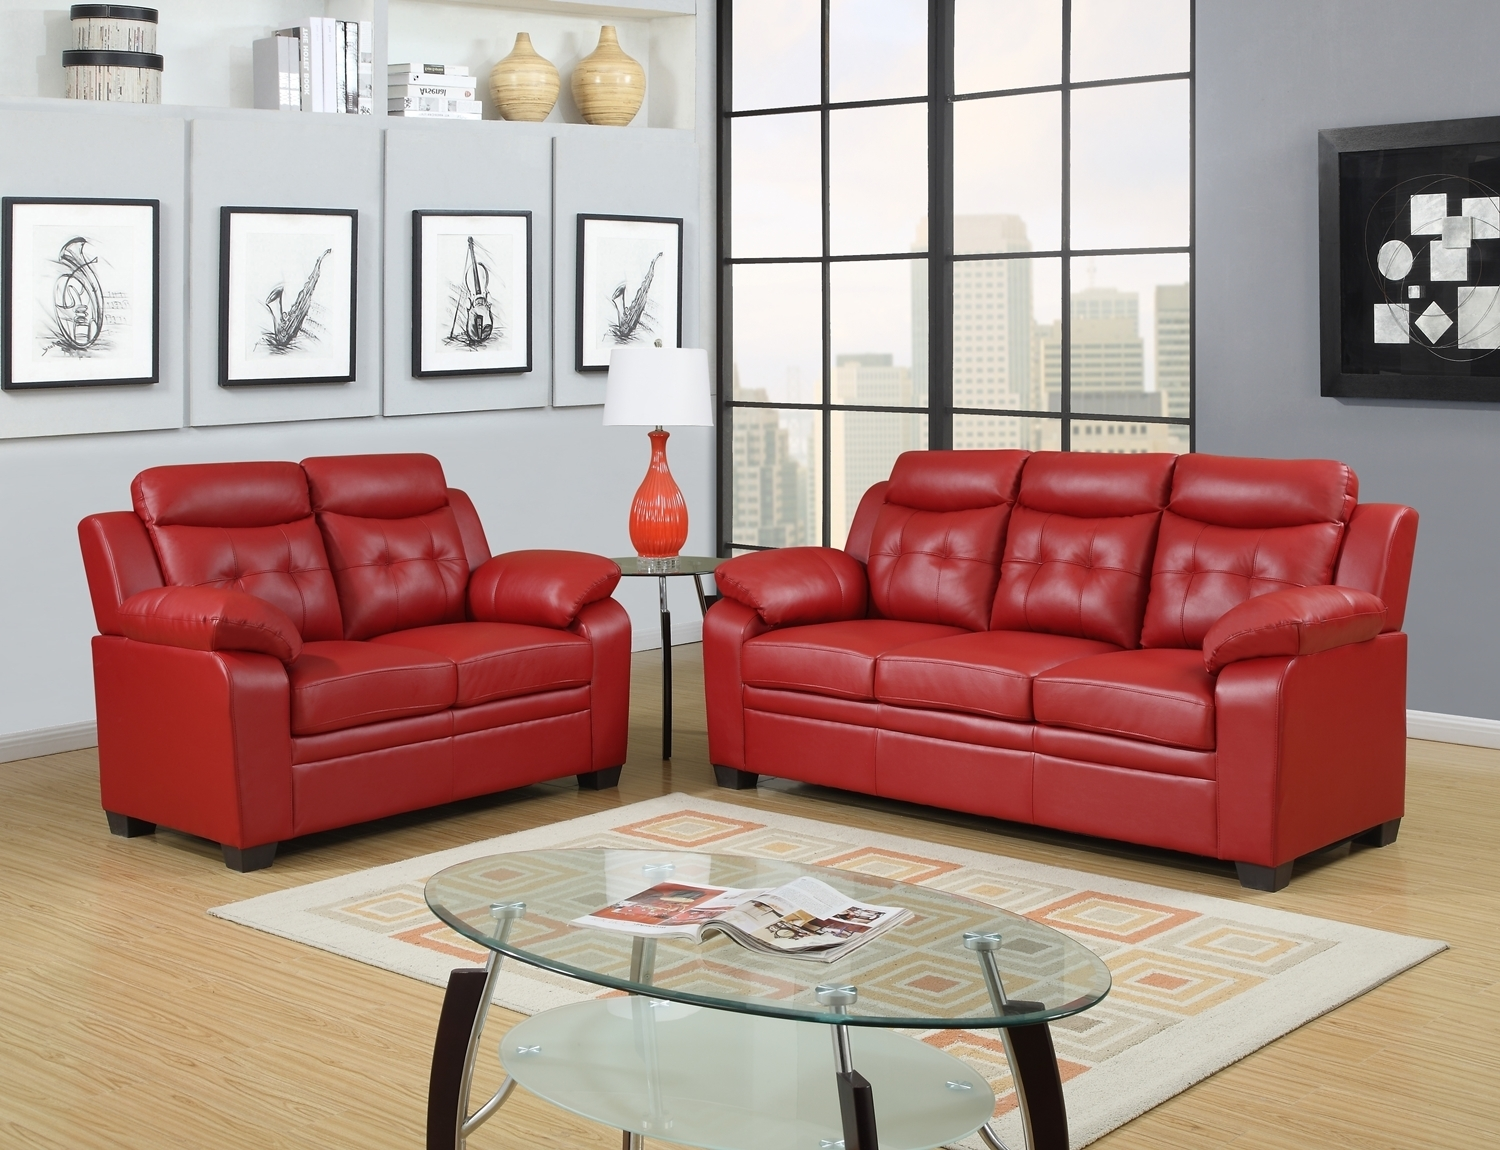 Cheap Red Leather Sofa – Radiovannes With Regard To Red Leather Sofas (Image 2 of 10)